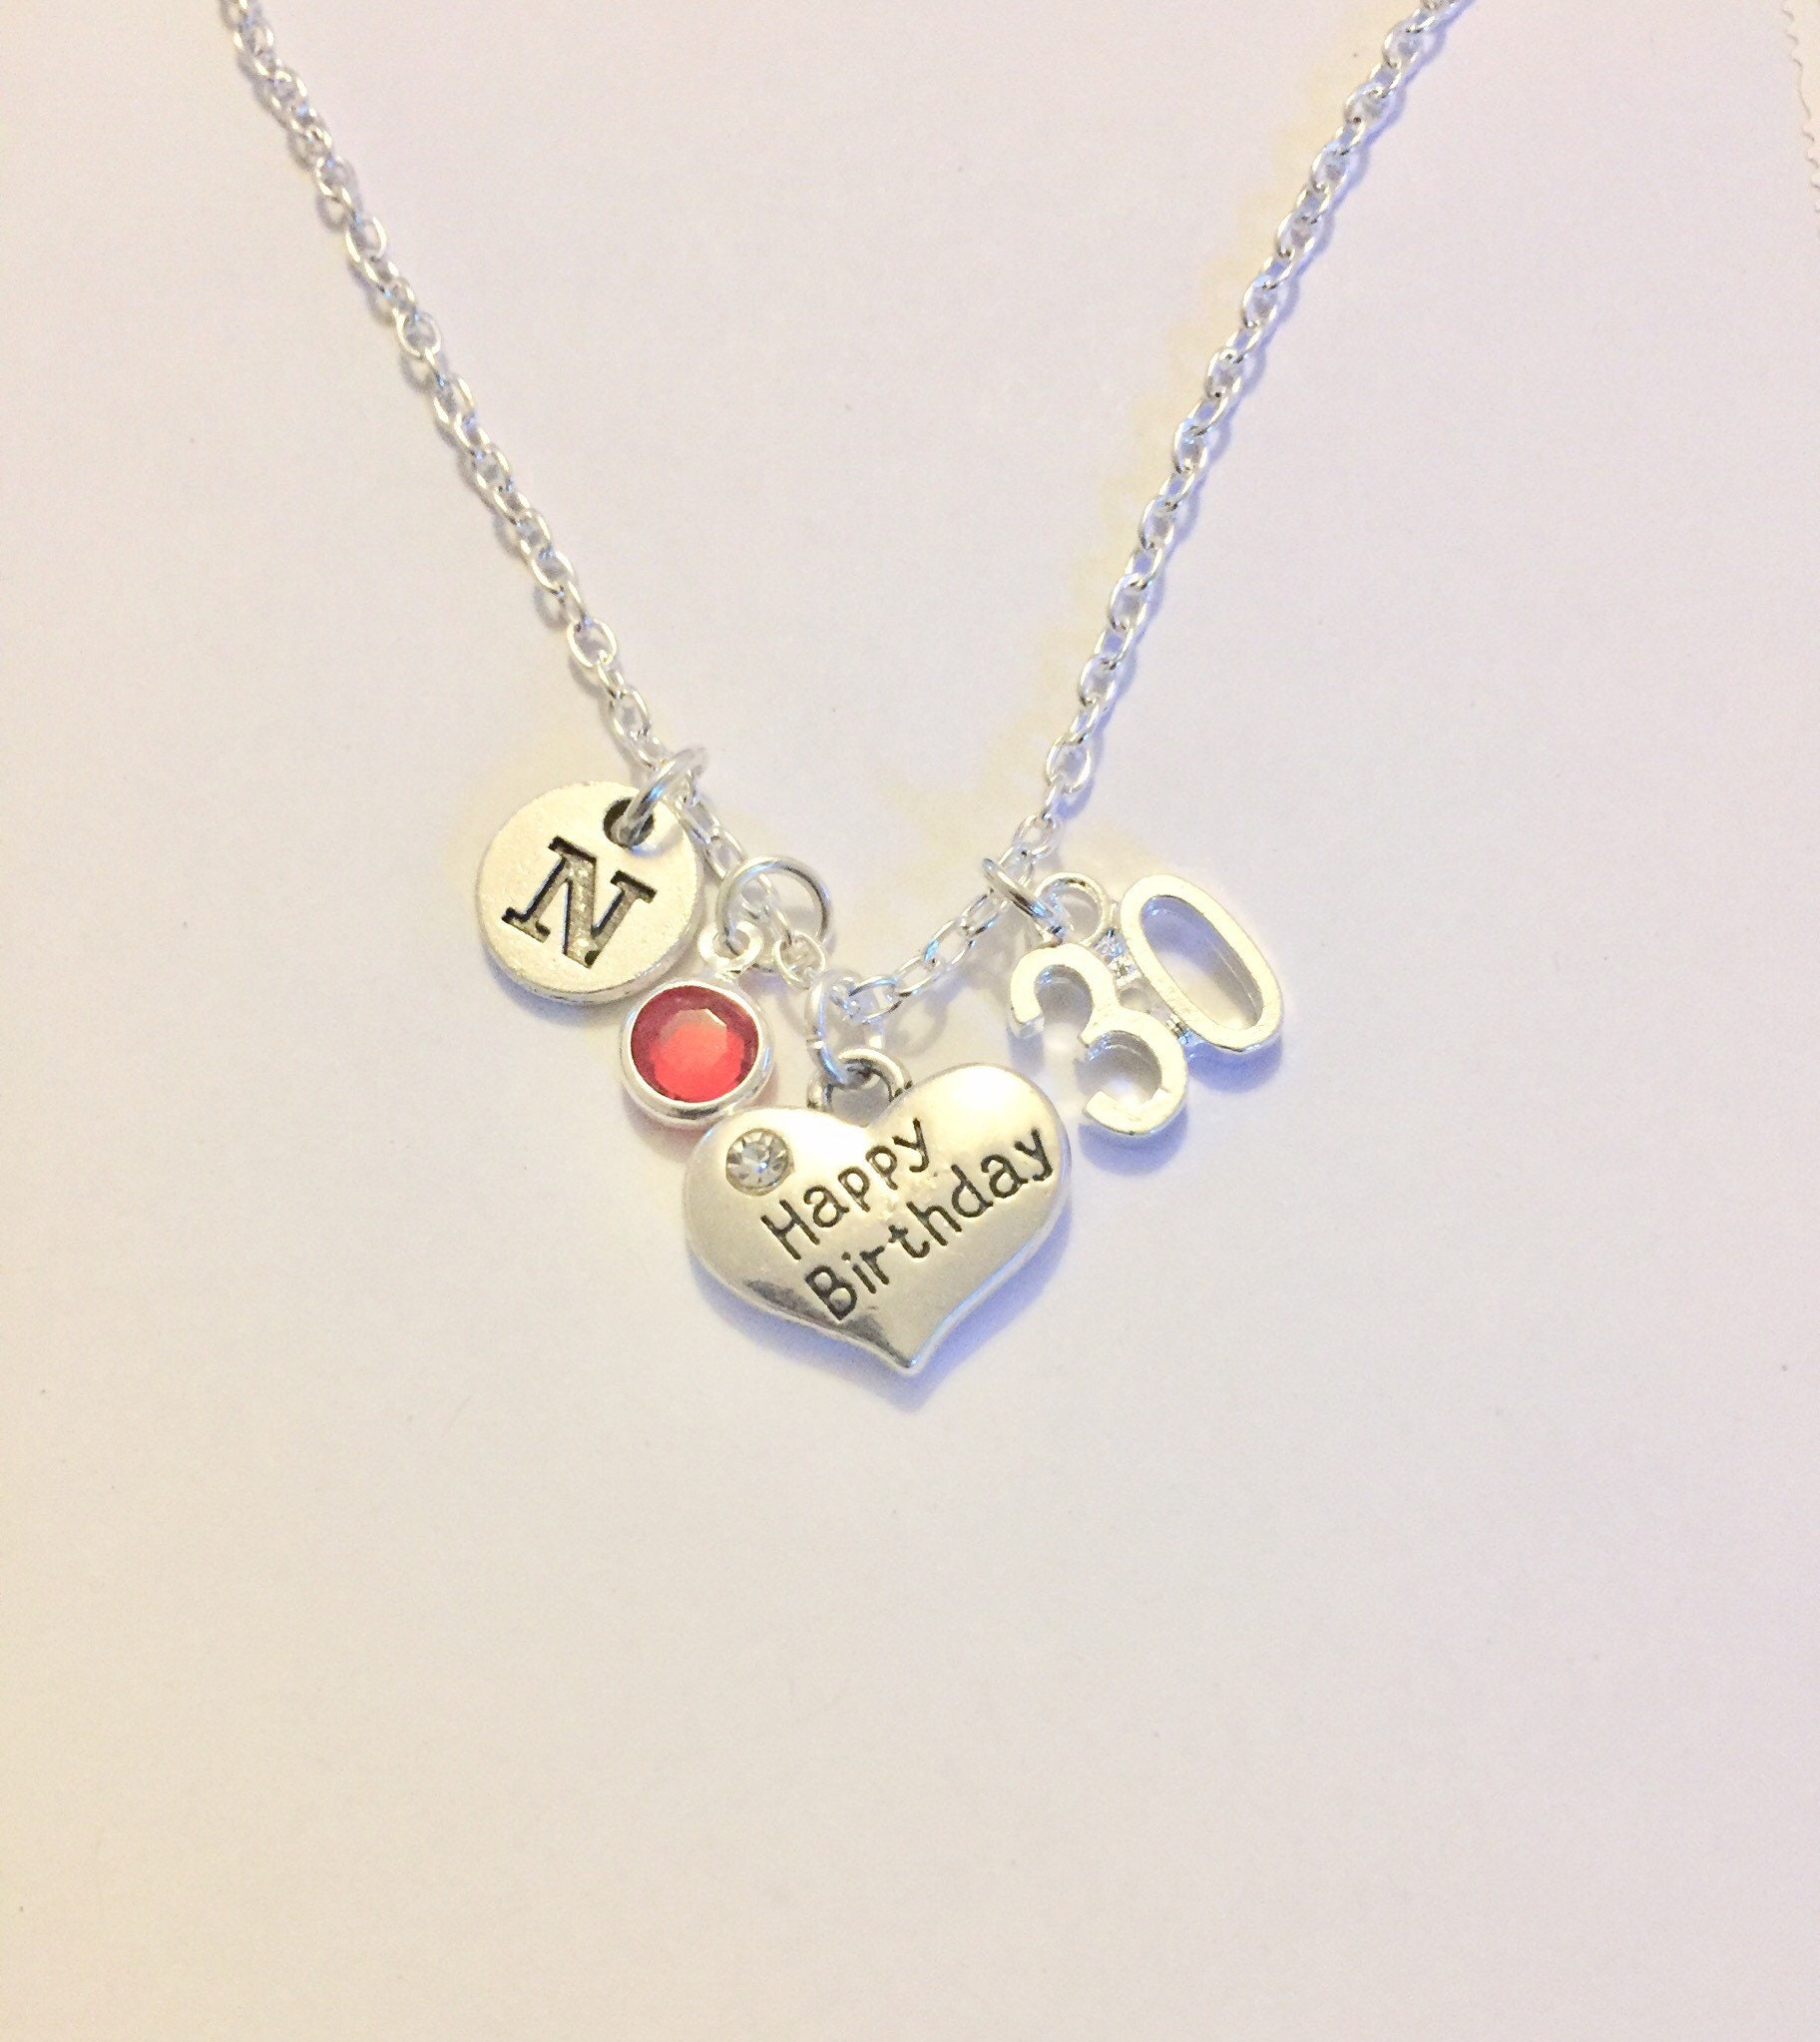 30th Birthday Necklace Gift Happy To Daughter Sister Friend BD Gifts